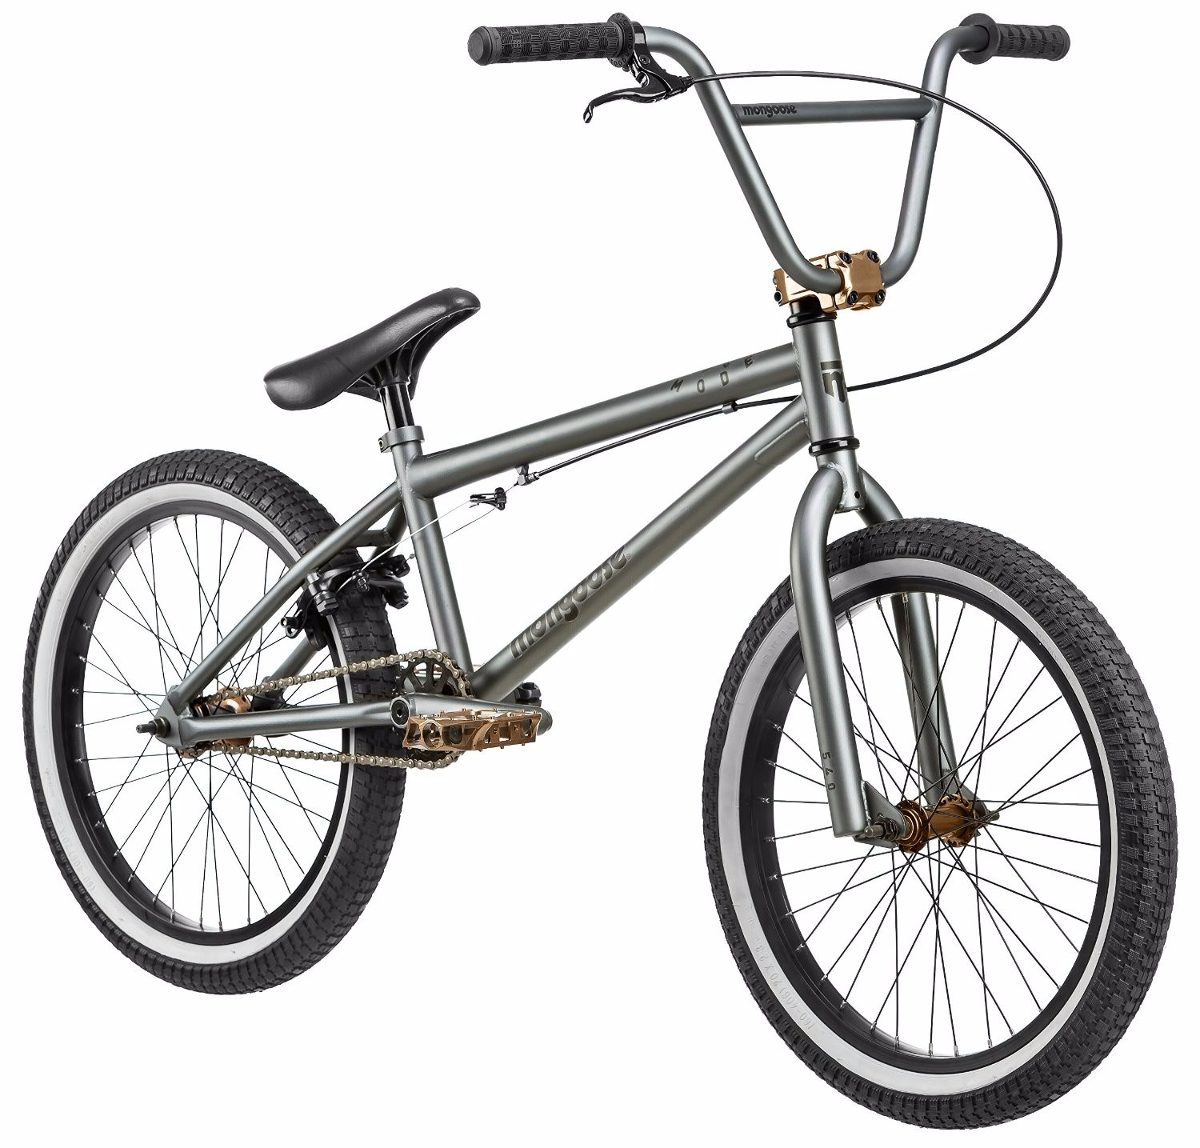 Mongoose Bmx 540 Mode Freestyle Bike Gris 20 - $ 7,995.00 ...